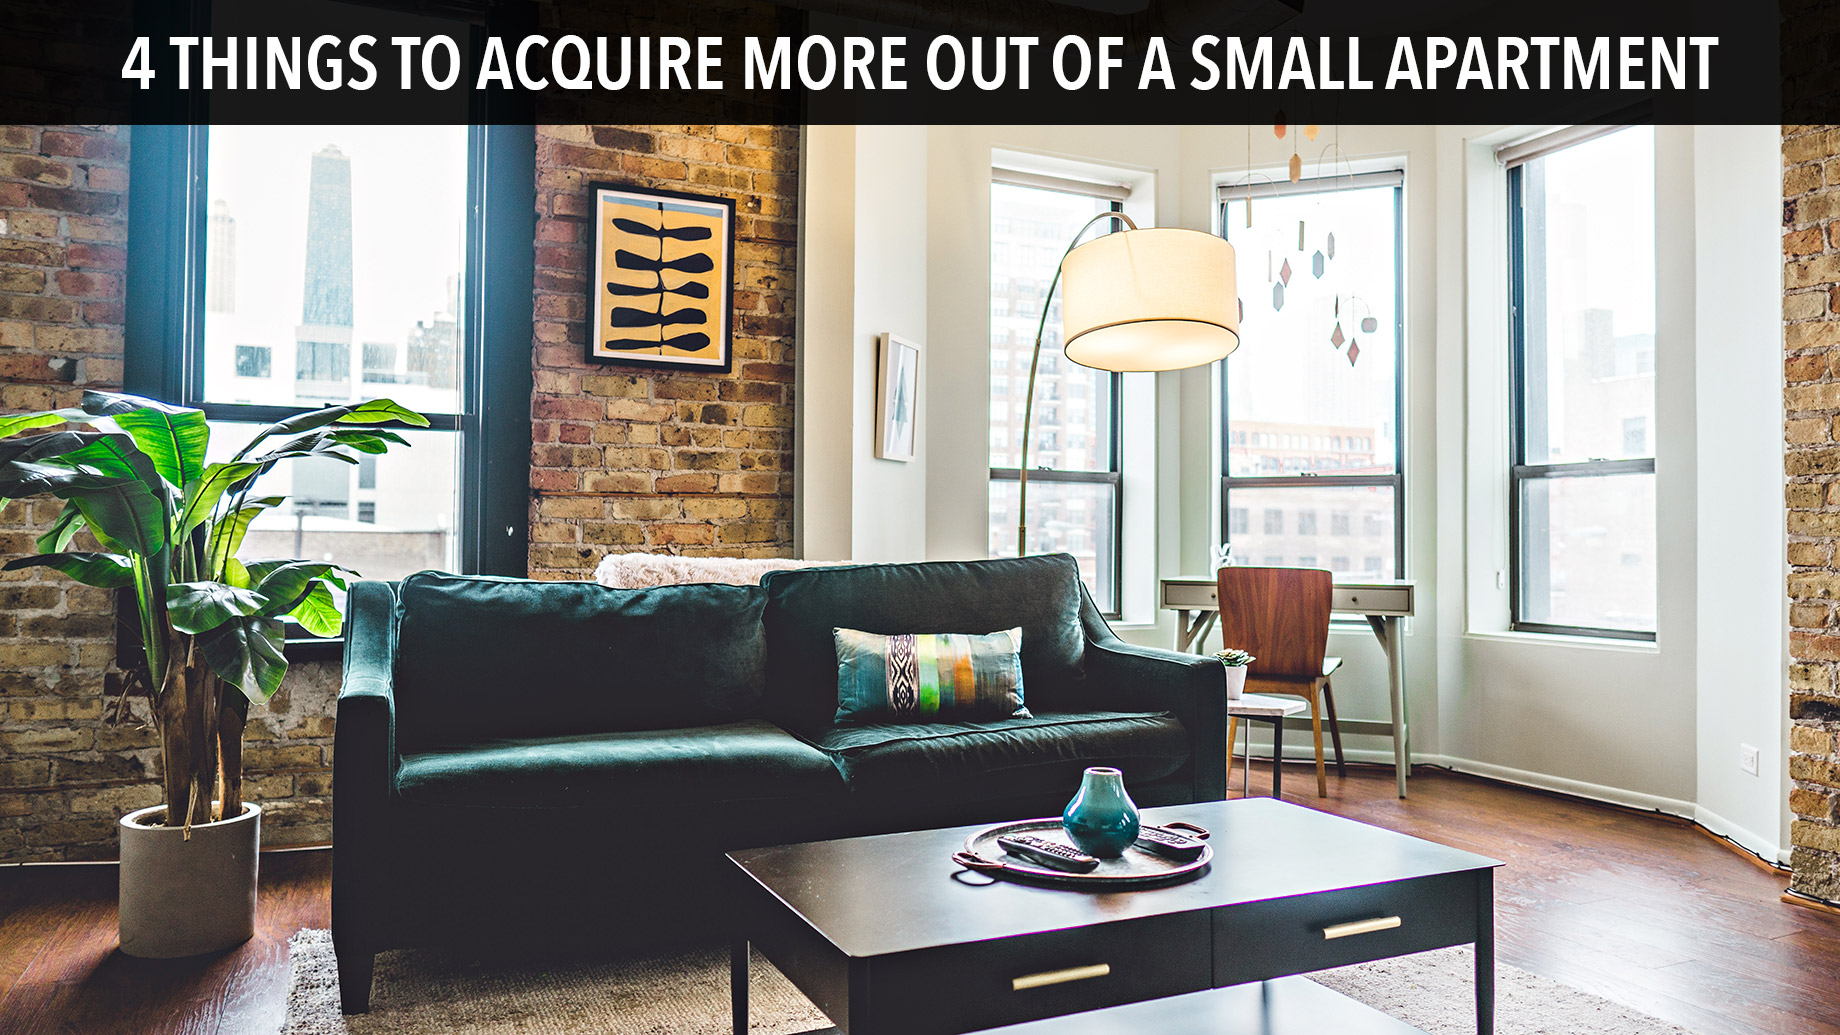 4 Things To Acquire More Out of a Small Apartment